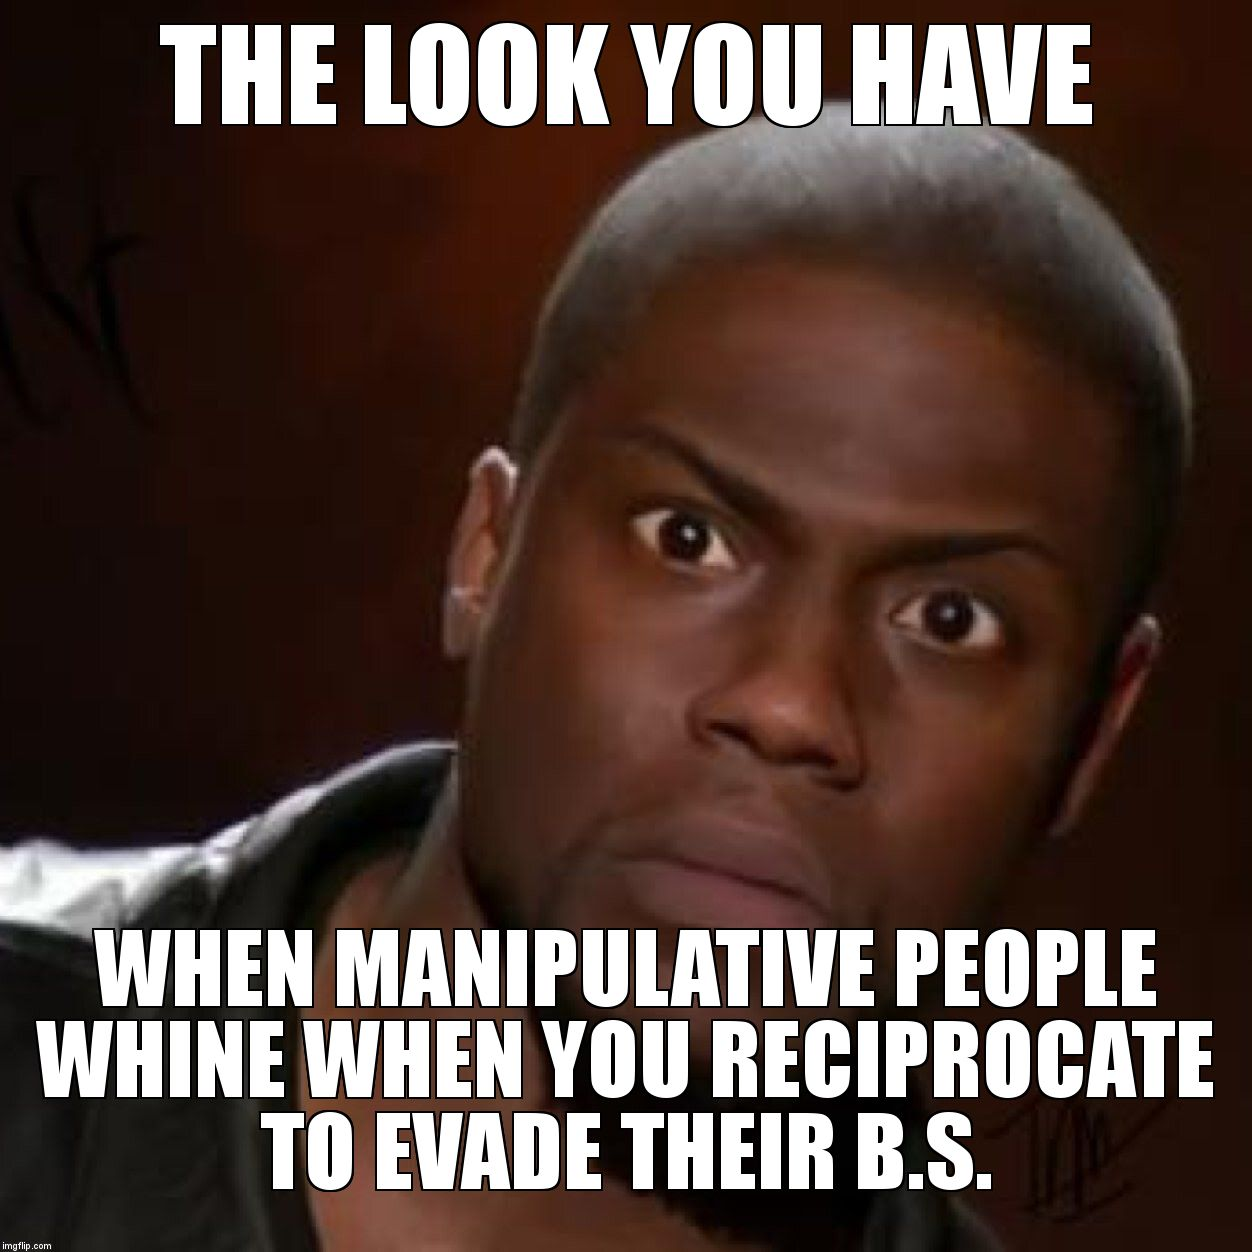 that look you give | THE LOOK YOU HAVE  WHEN MANIPULATIVE PEOPLE WHINE WHEN YOU RECIPROCATE TO EVADE THEIR B.S. | image tagged in that look you give | made w/ Imgflip meme maker